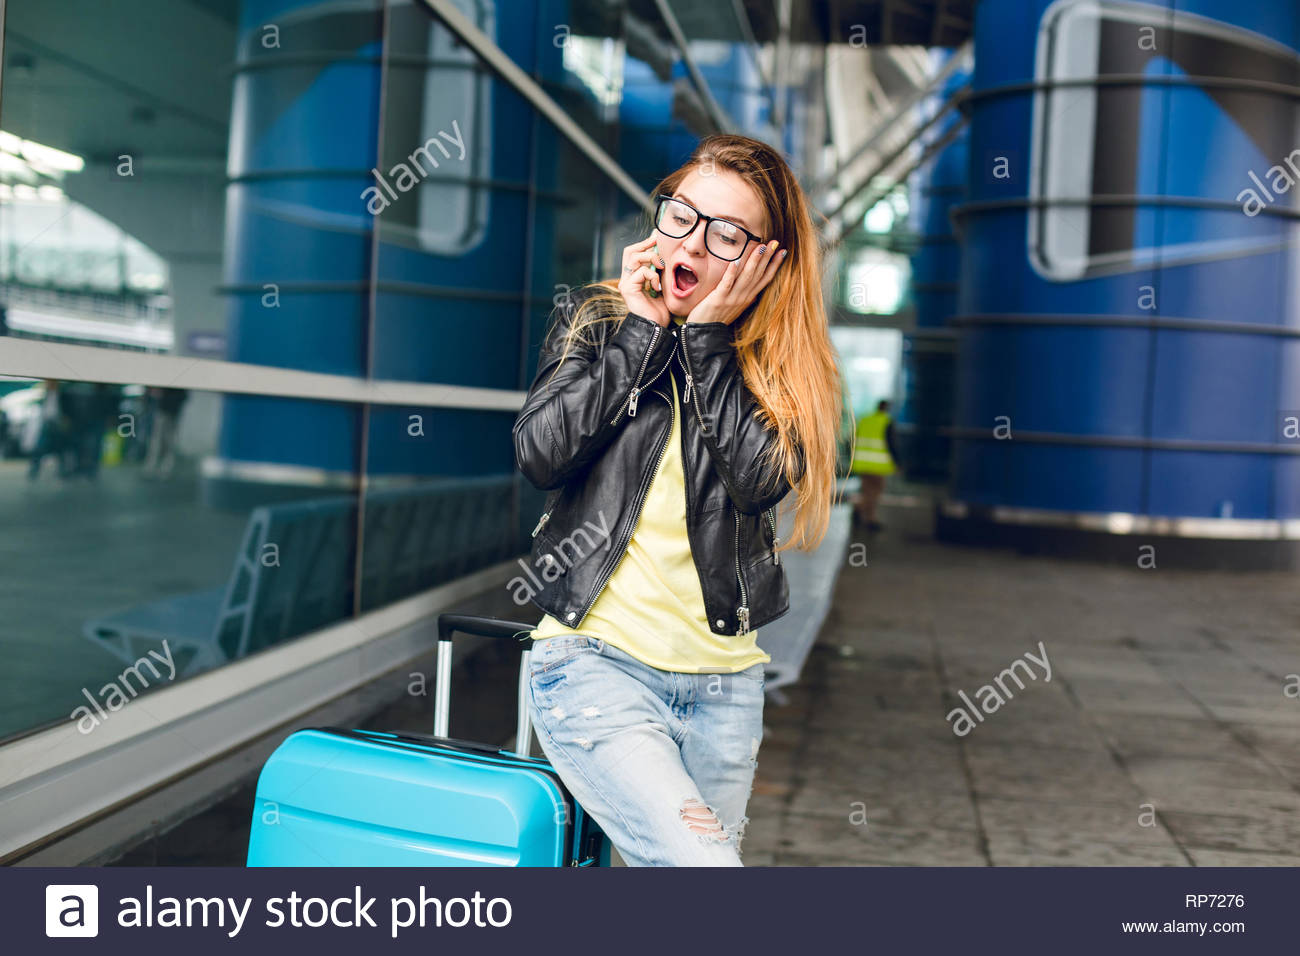 Young girl with long hair in black jacket is standing near suitcase outside in airport. She has long hair, black glasses. Speaking on phone intrigued. - Stock Image